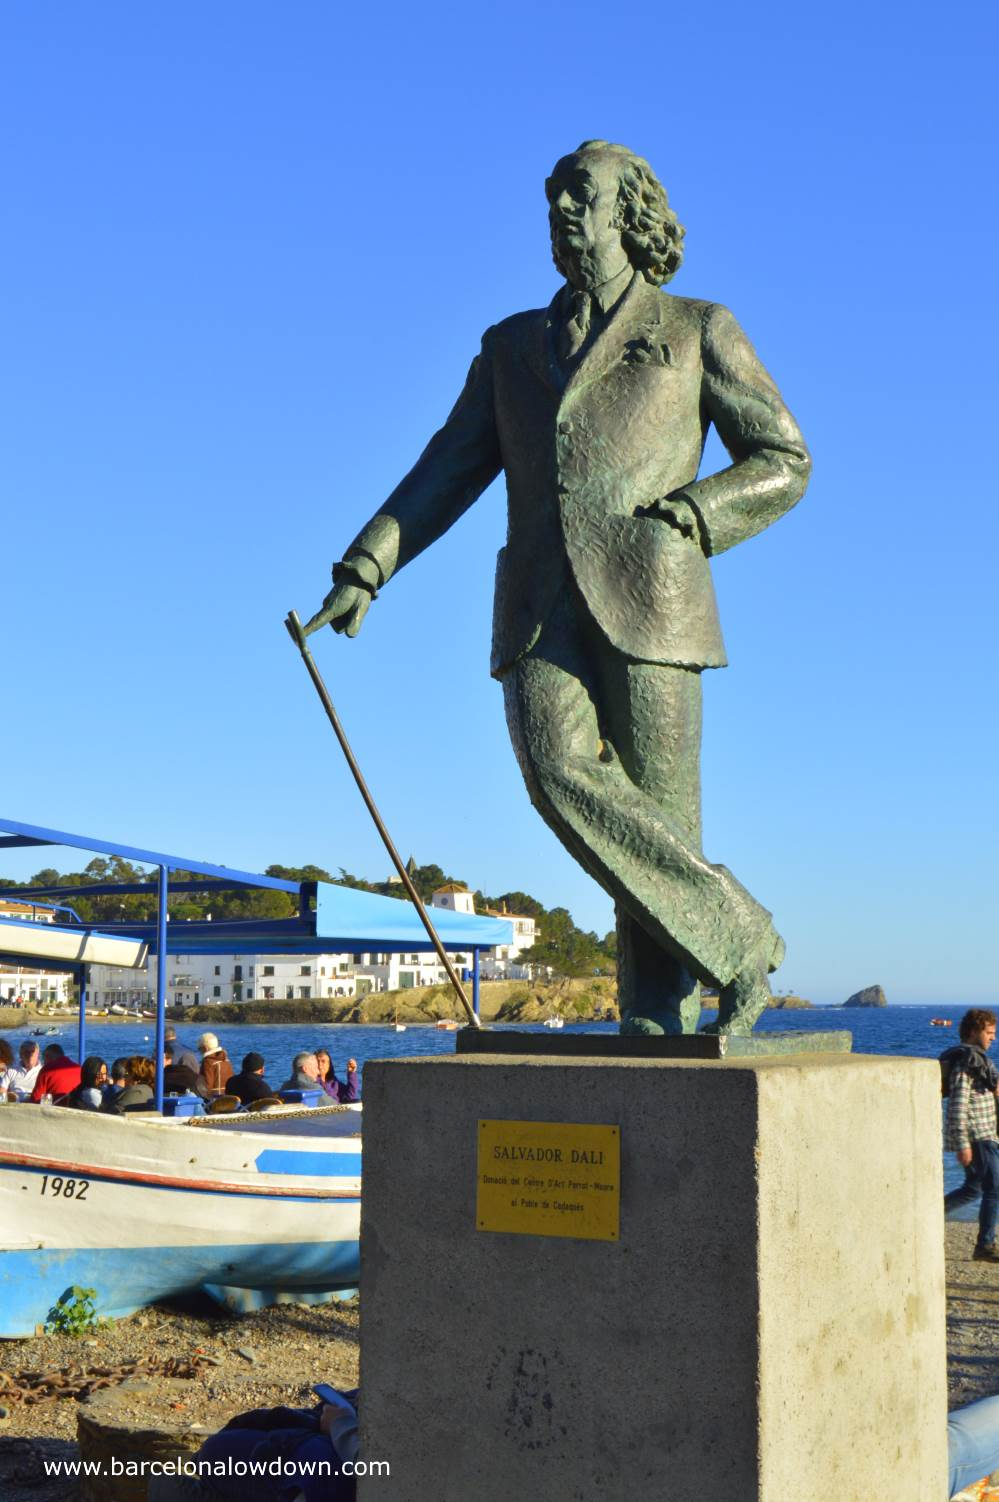 Bronze statue of Salvador Dalí which was donated to the town of Cadaqués